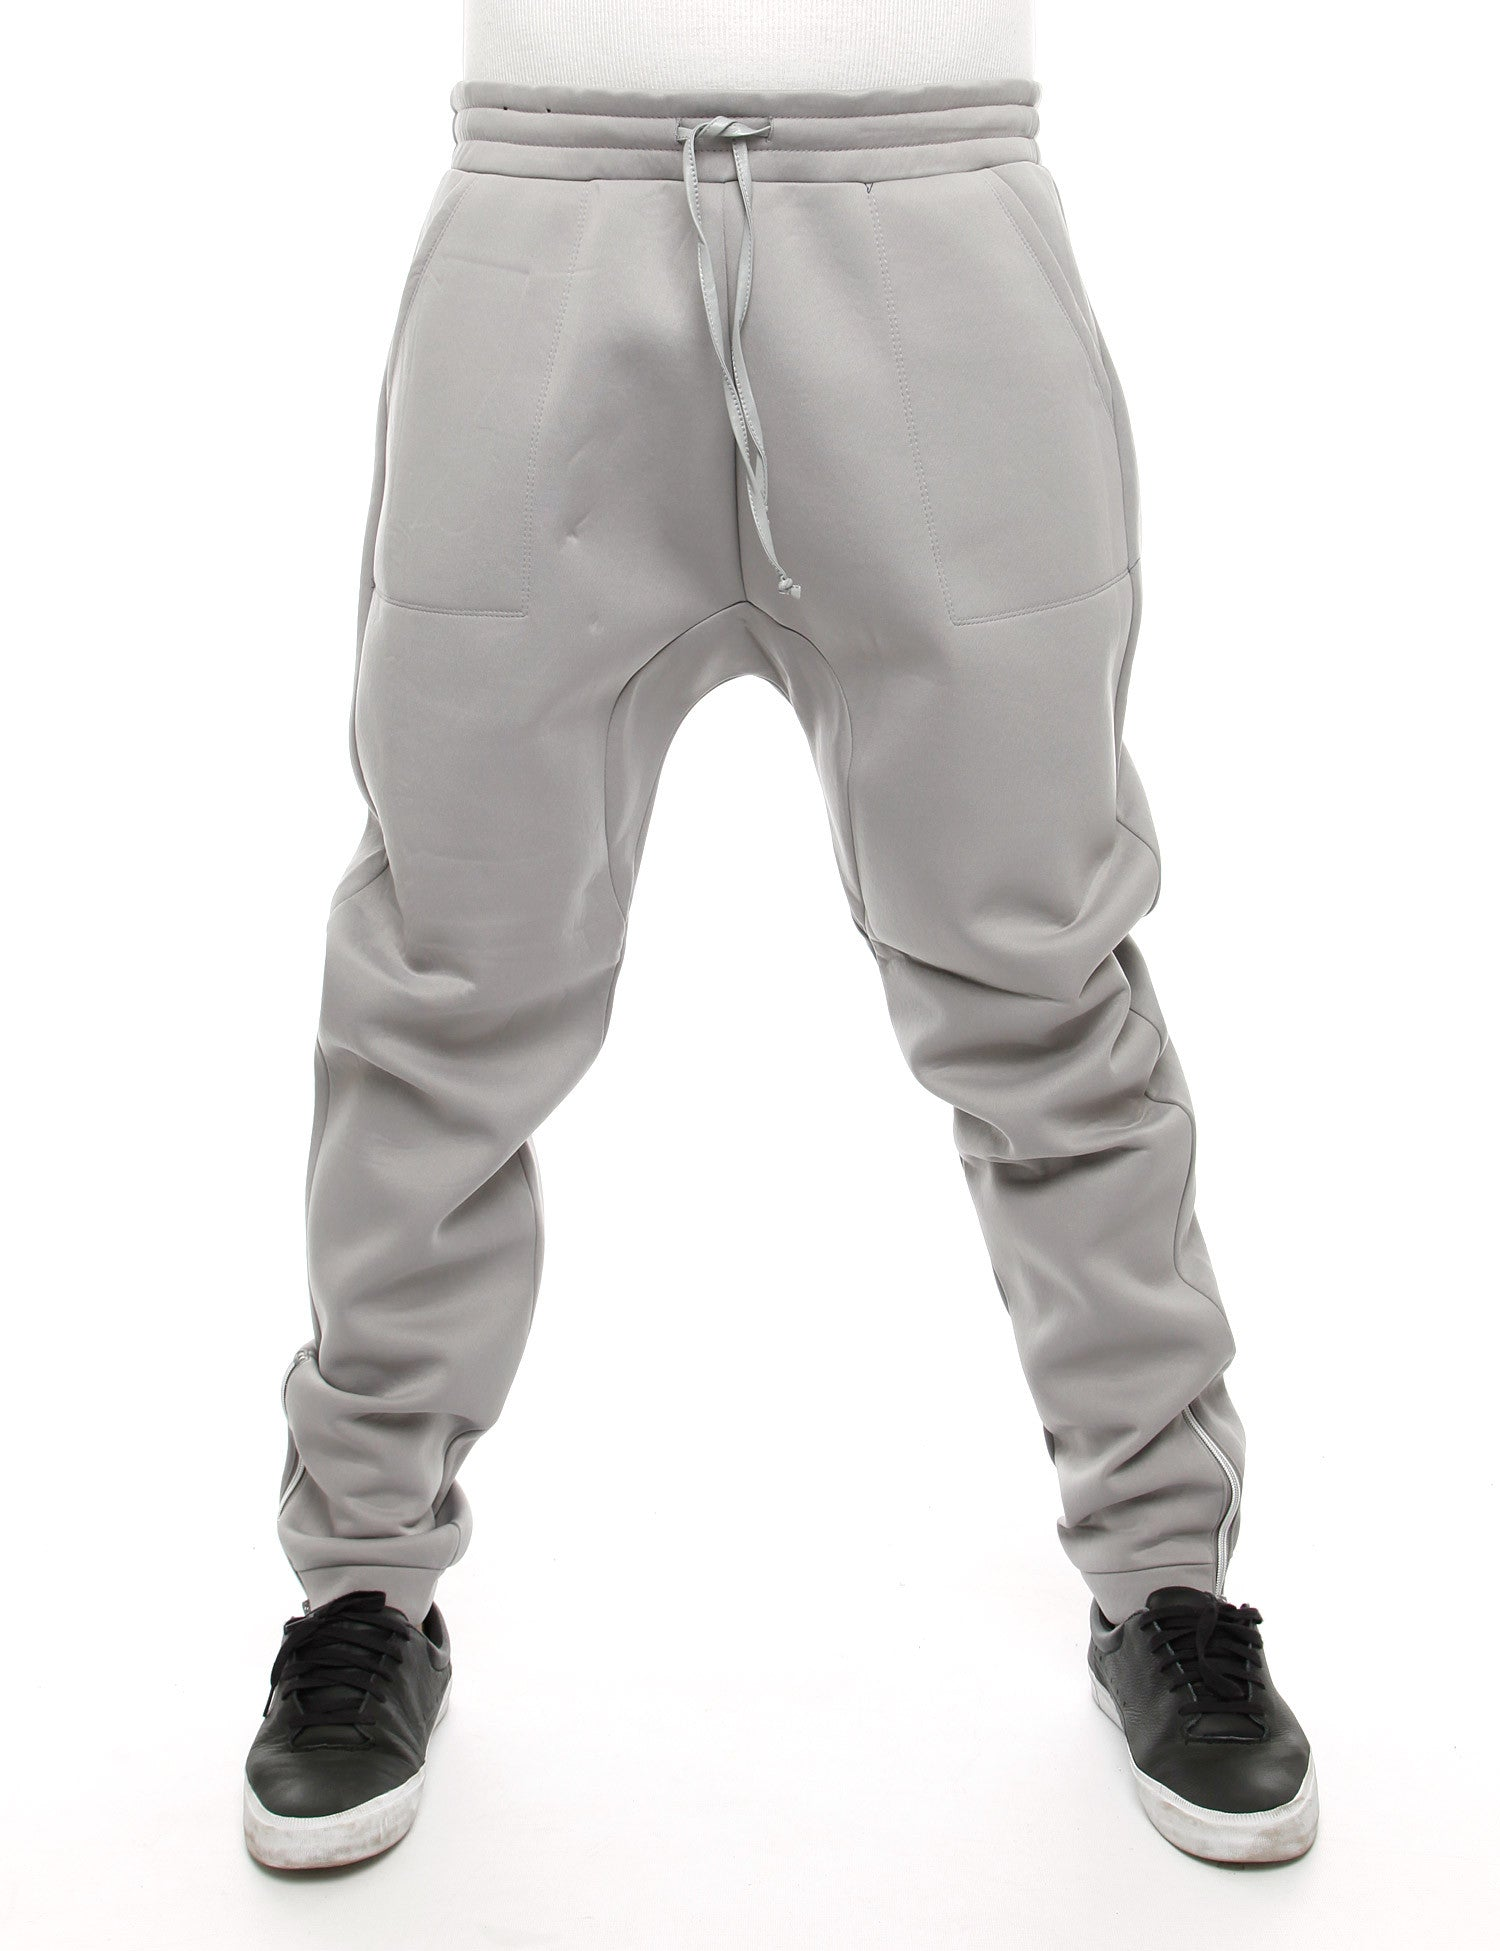 Royal Blue Sweatpants 97027P Grey